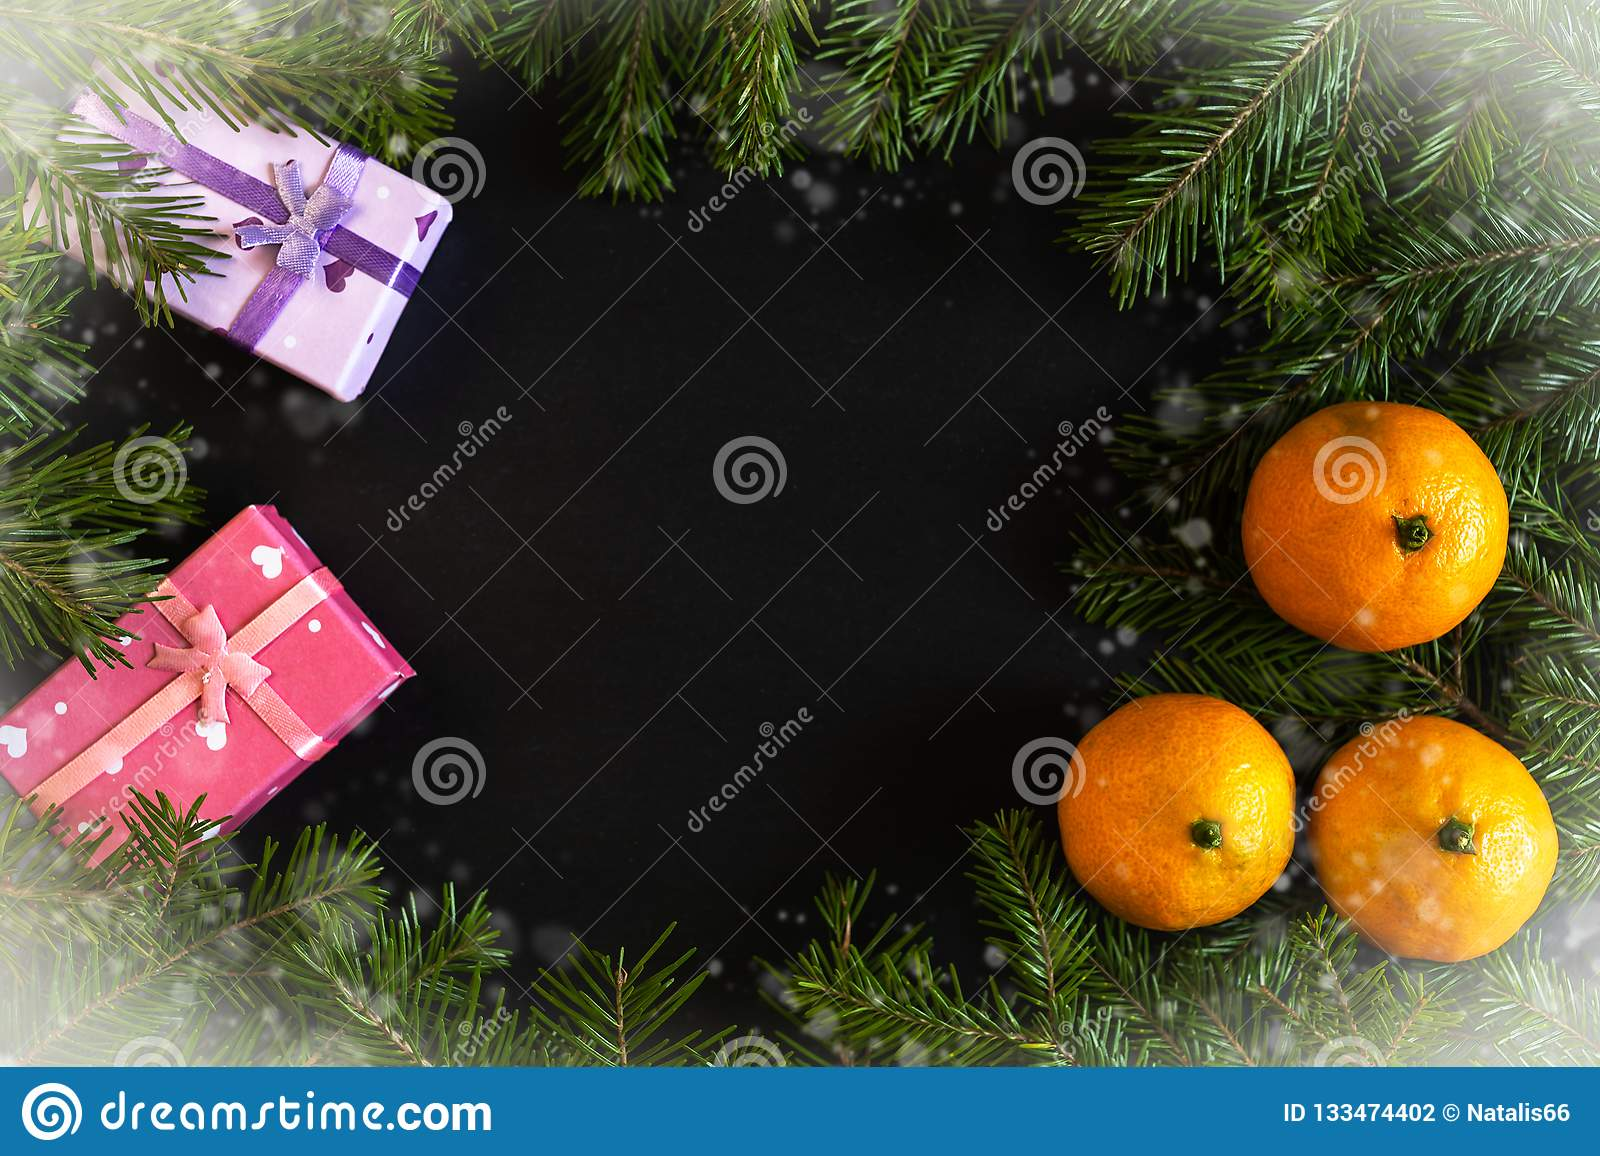 Frame of snow-covered fir branches, orange mandarins, gift boxes with dark copy space in middle